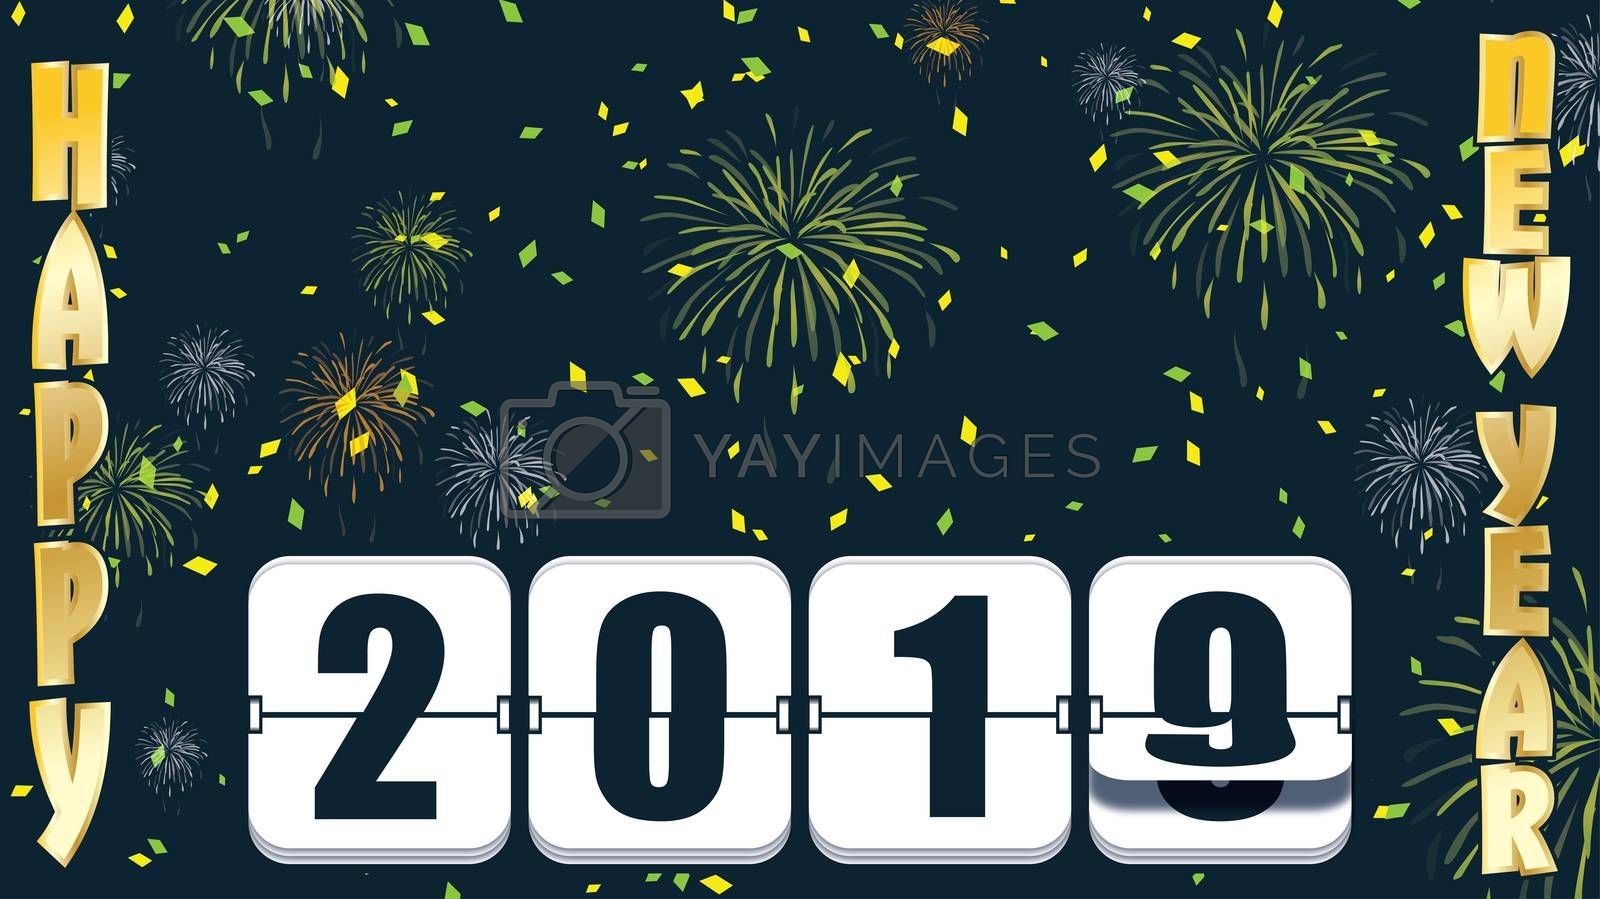 2019 New years Countdown clock changing numeral with festive background andtype